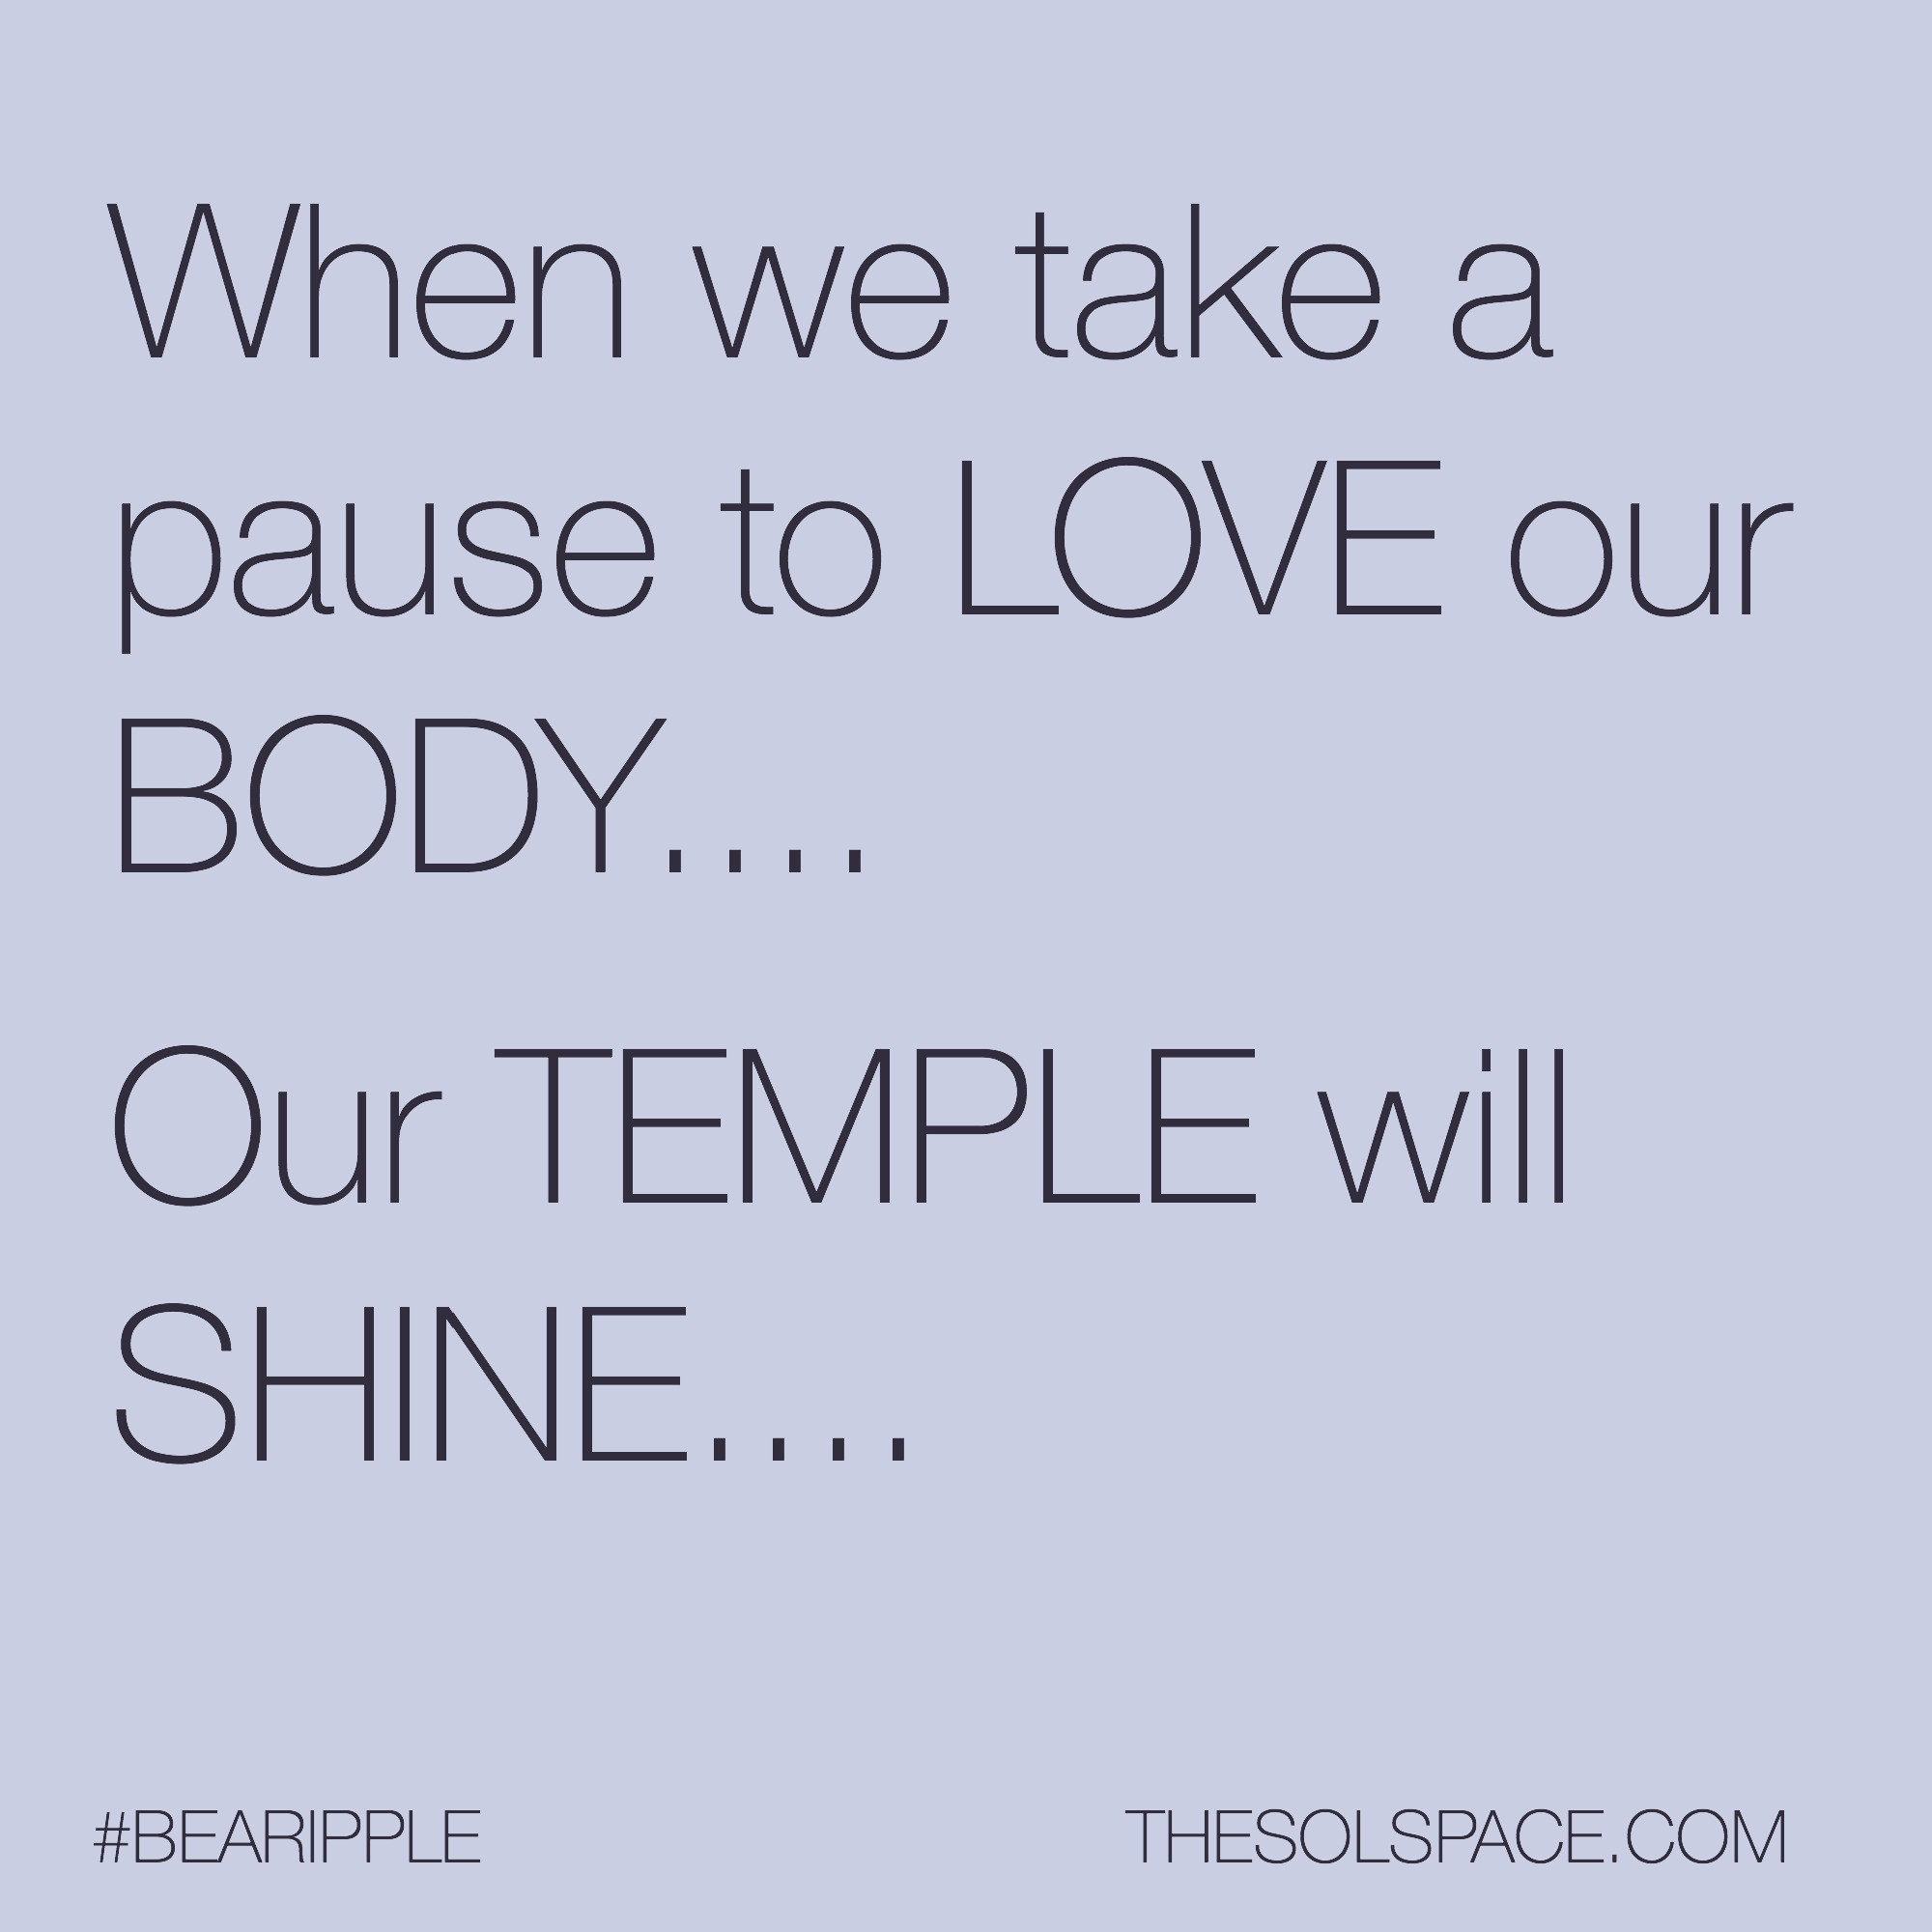 #BeARipple..When we take a pause to love our body...our temple will shine @theSOLspace